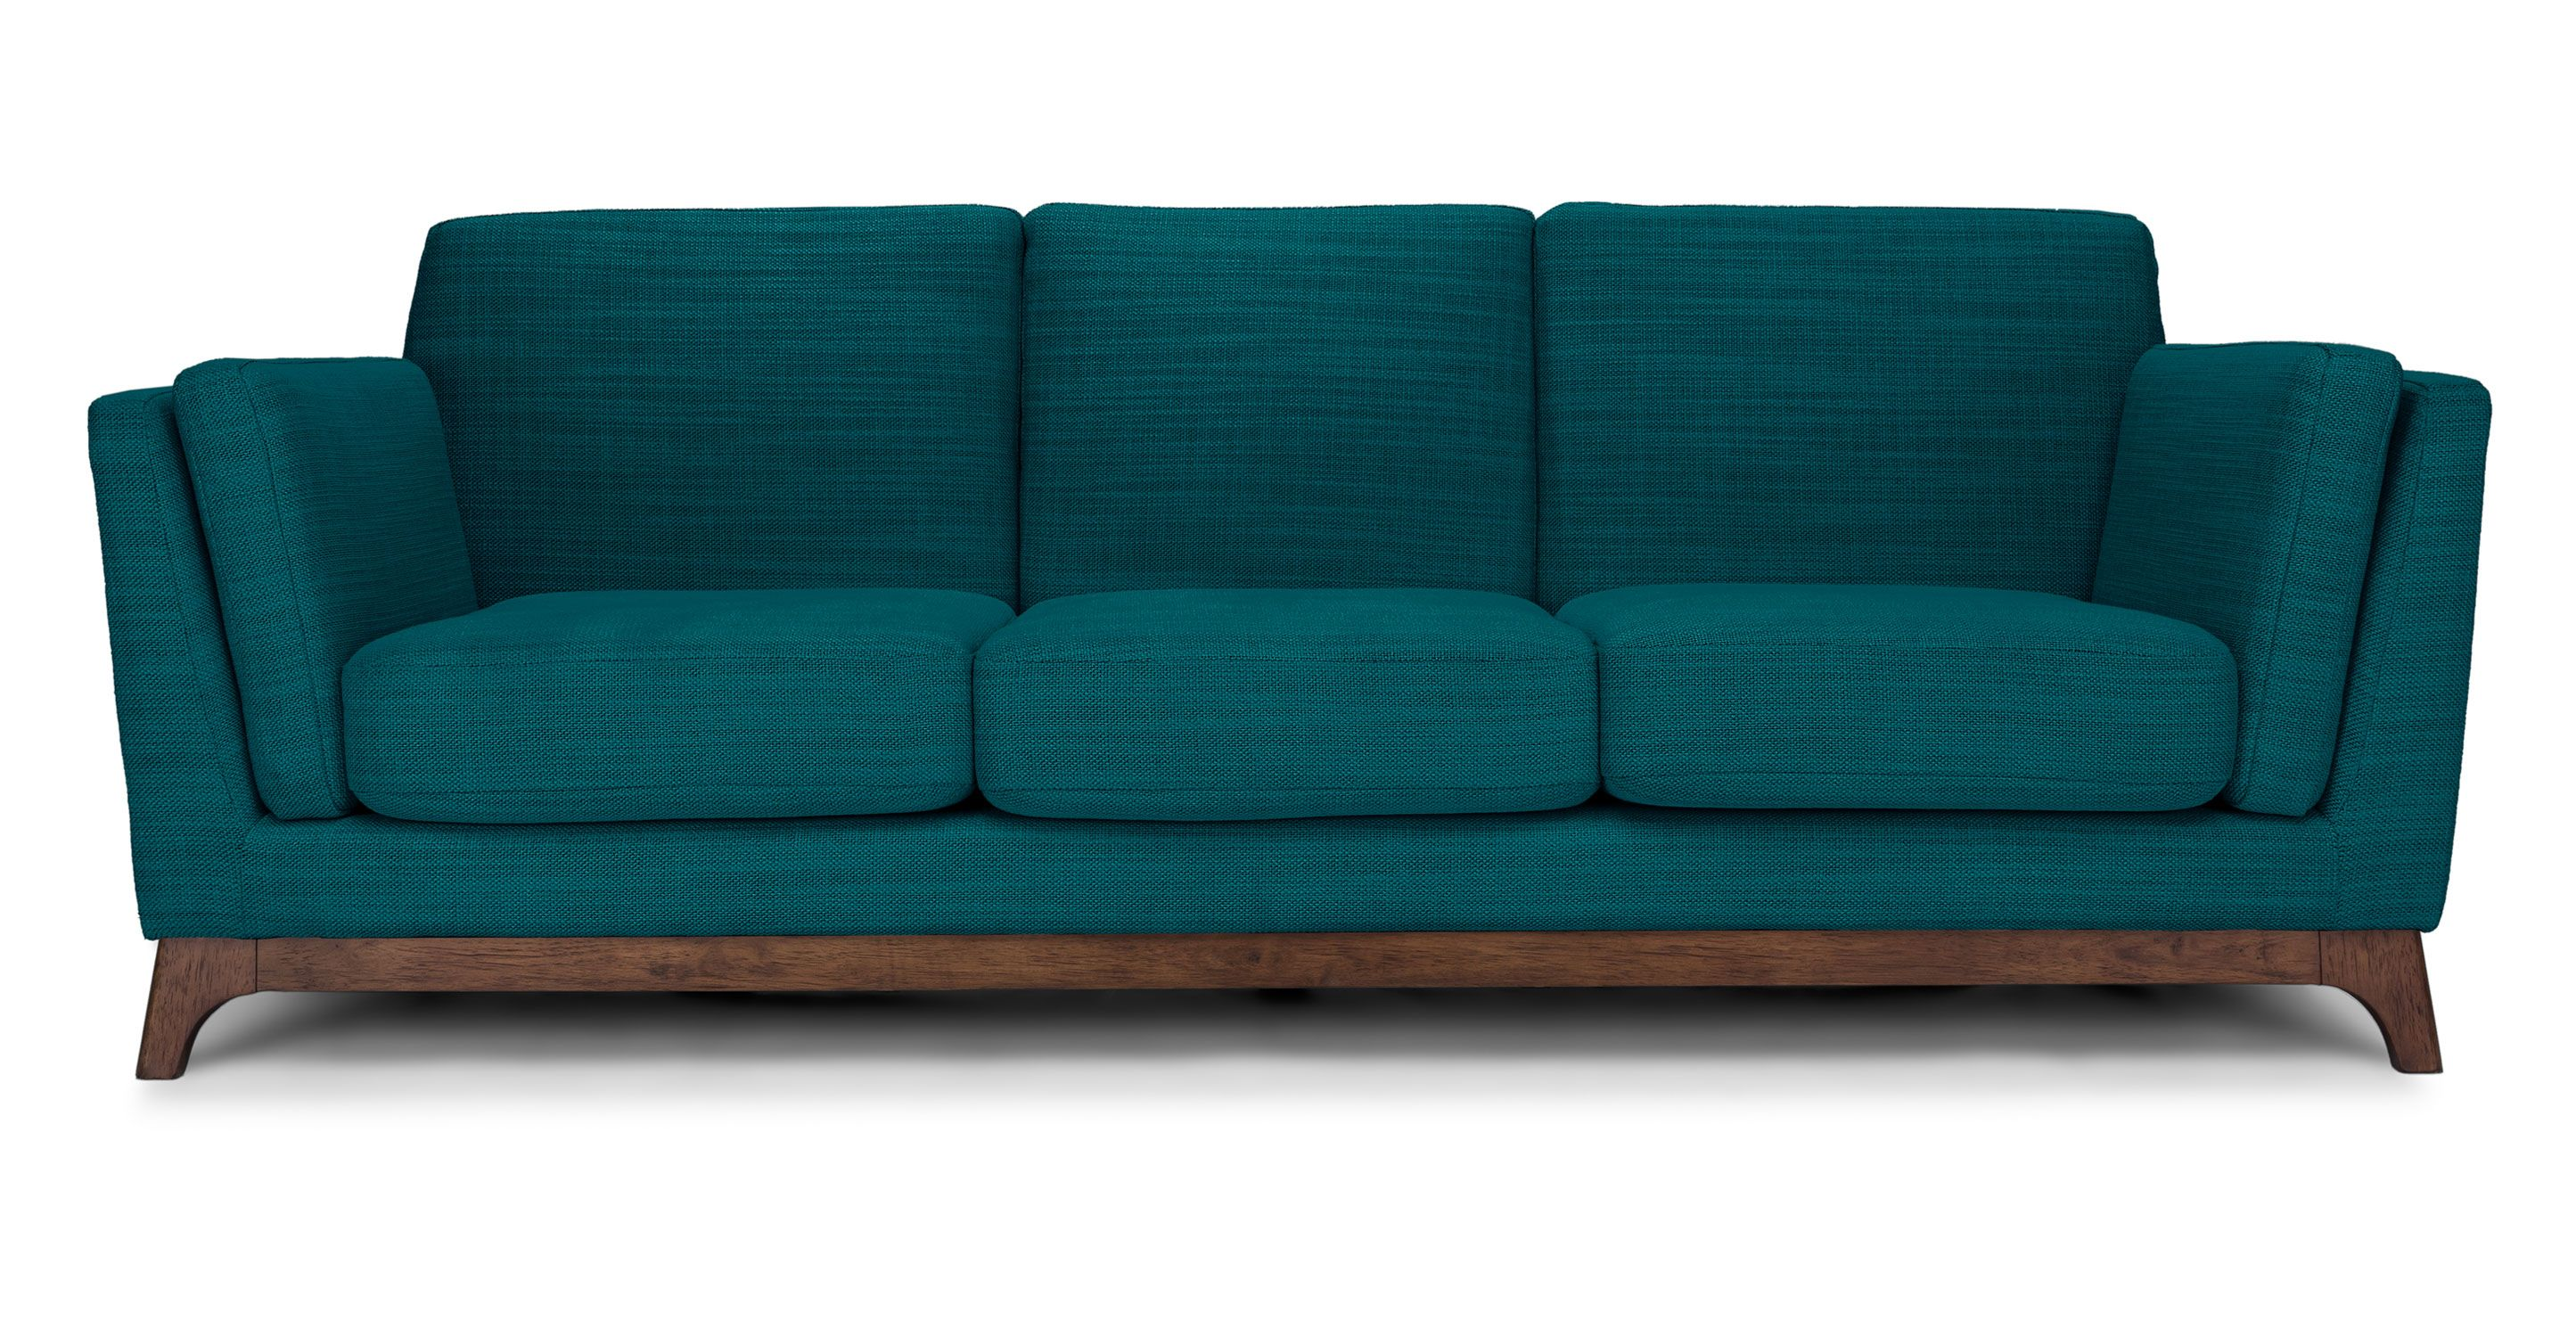 Green Blue Sofa 3 Seater Solid Wood Legs